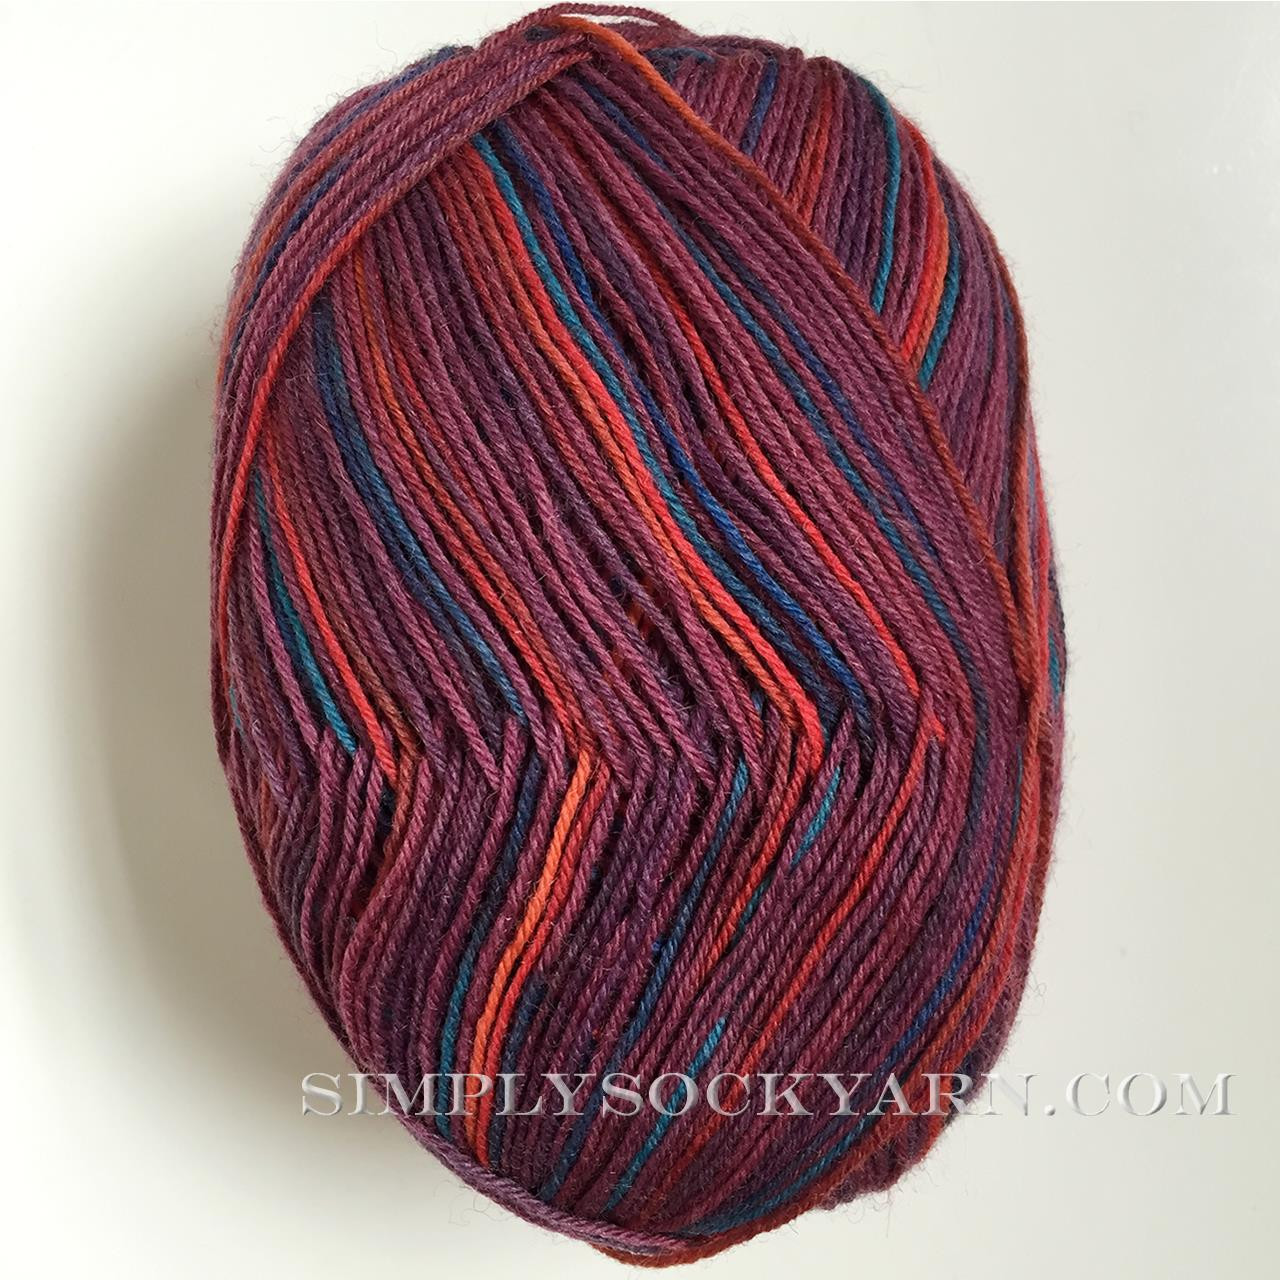 Xxl Knitting Yarn : Trekking xxl simply socks yarn company